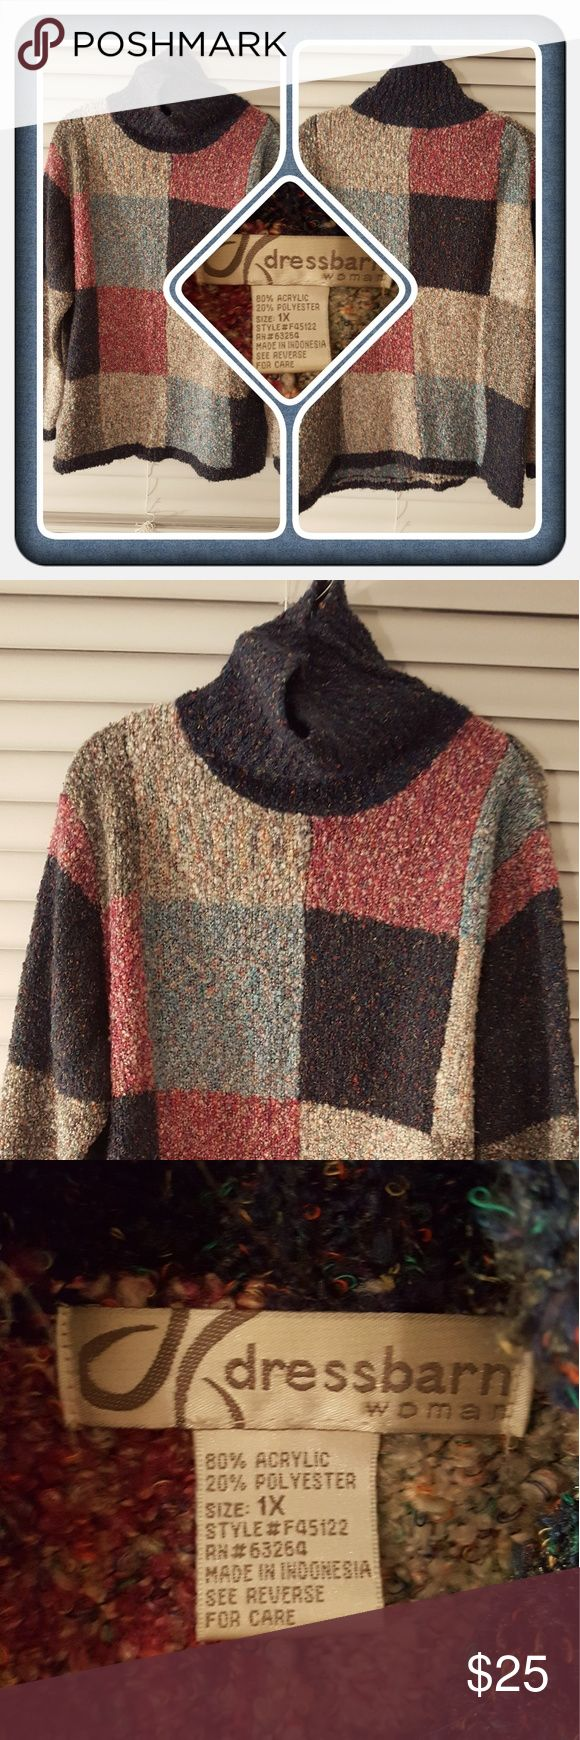 ❤ Woman's Turtleneck Sweater Size 1X ❤ Woman's Turtleneck Sweater From Dressbarn Size 1X. This Super Cute & Comfy Sweater Fits Small More Like An XL Or Large In My Opinion Form Fitting. This Is Perfect For Fall And Winter Great Pre Loved Condition Bought From Another Seller But I Never Wore It 🚫 PAYPAL 🚫 TRADES 🚫 OFFERS PRICE IS FIRM ❤ Dress Barn Sweaters Cowl & Turtlenecks